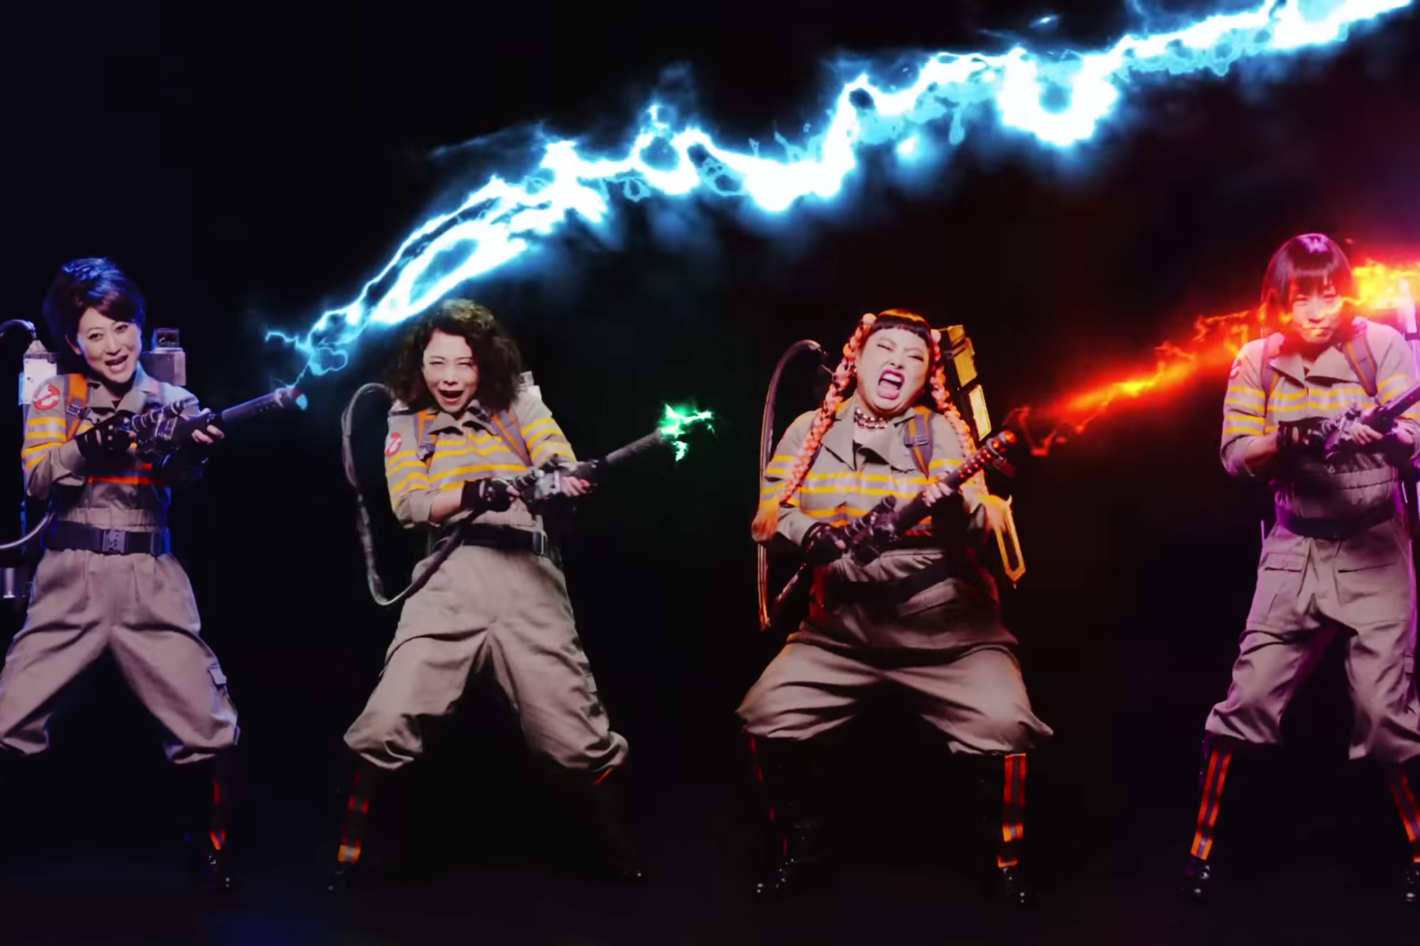 Watch a J-pop Cover of the Ghostbusters Theme